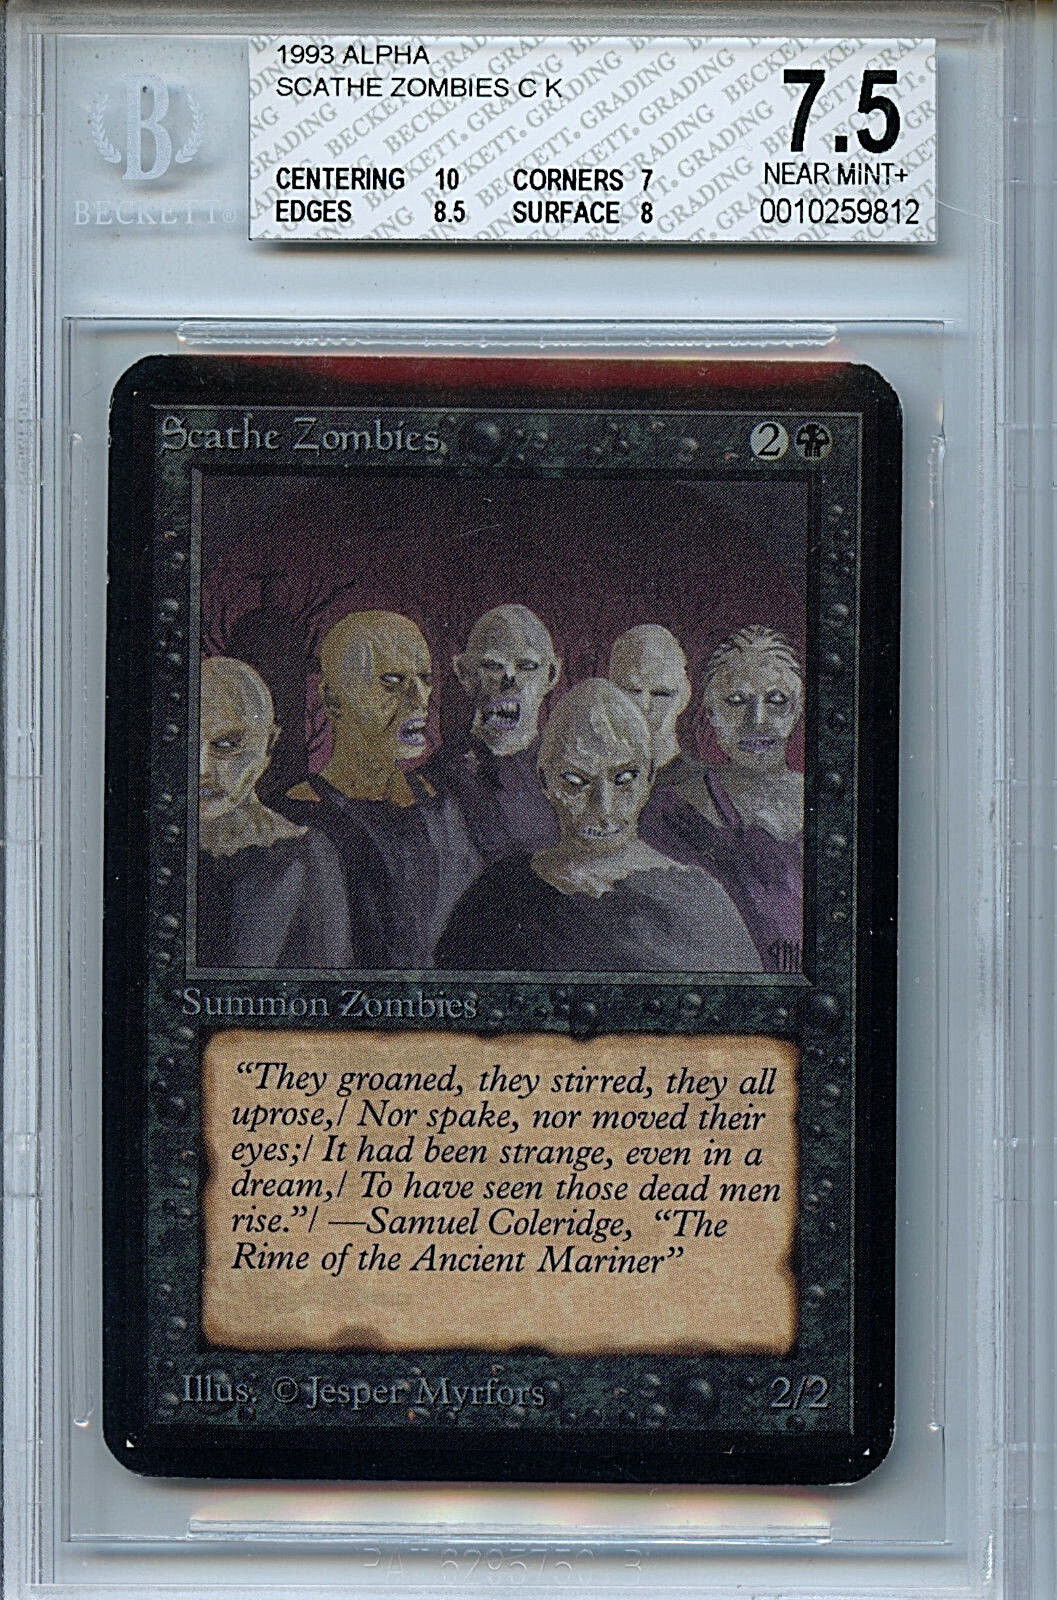 MTG Alpha Scathe Zombies BGS 7.5 NM+ magic card with 10 centering WOTC 9812